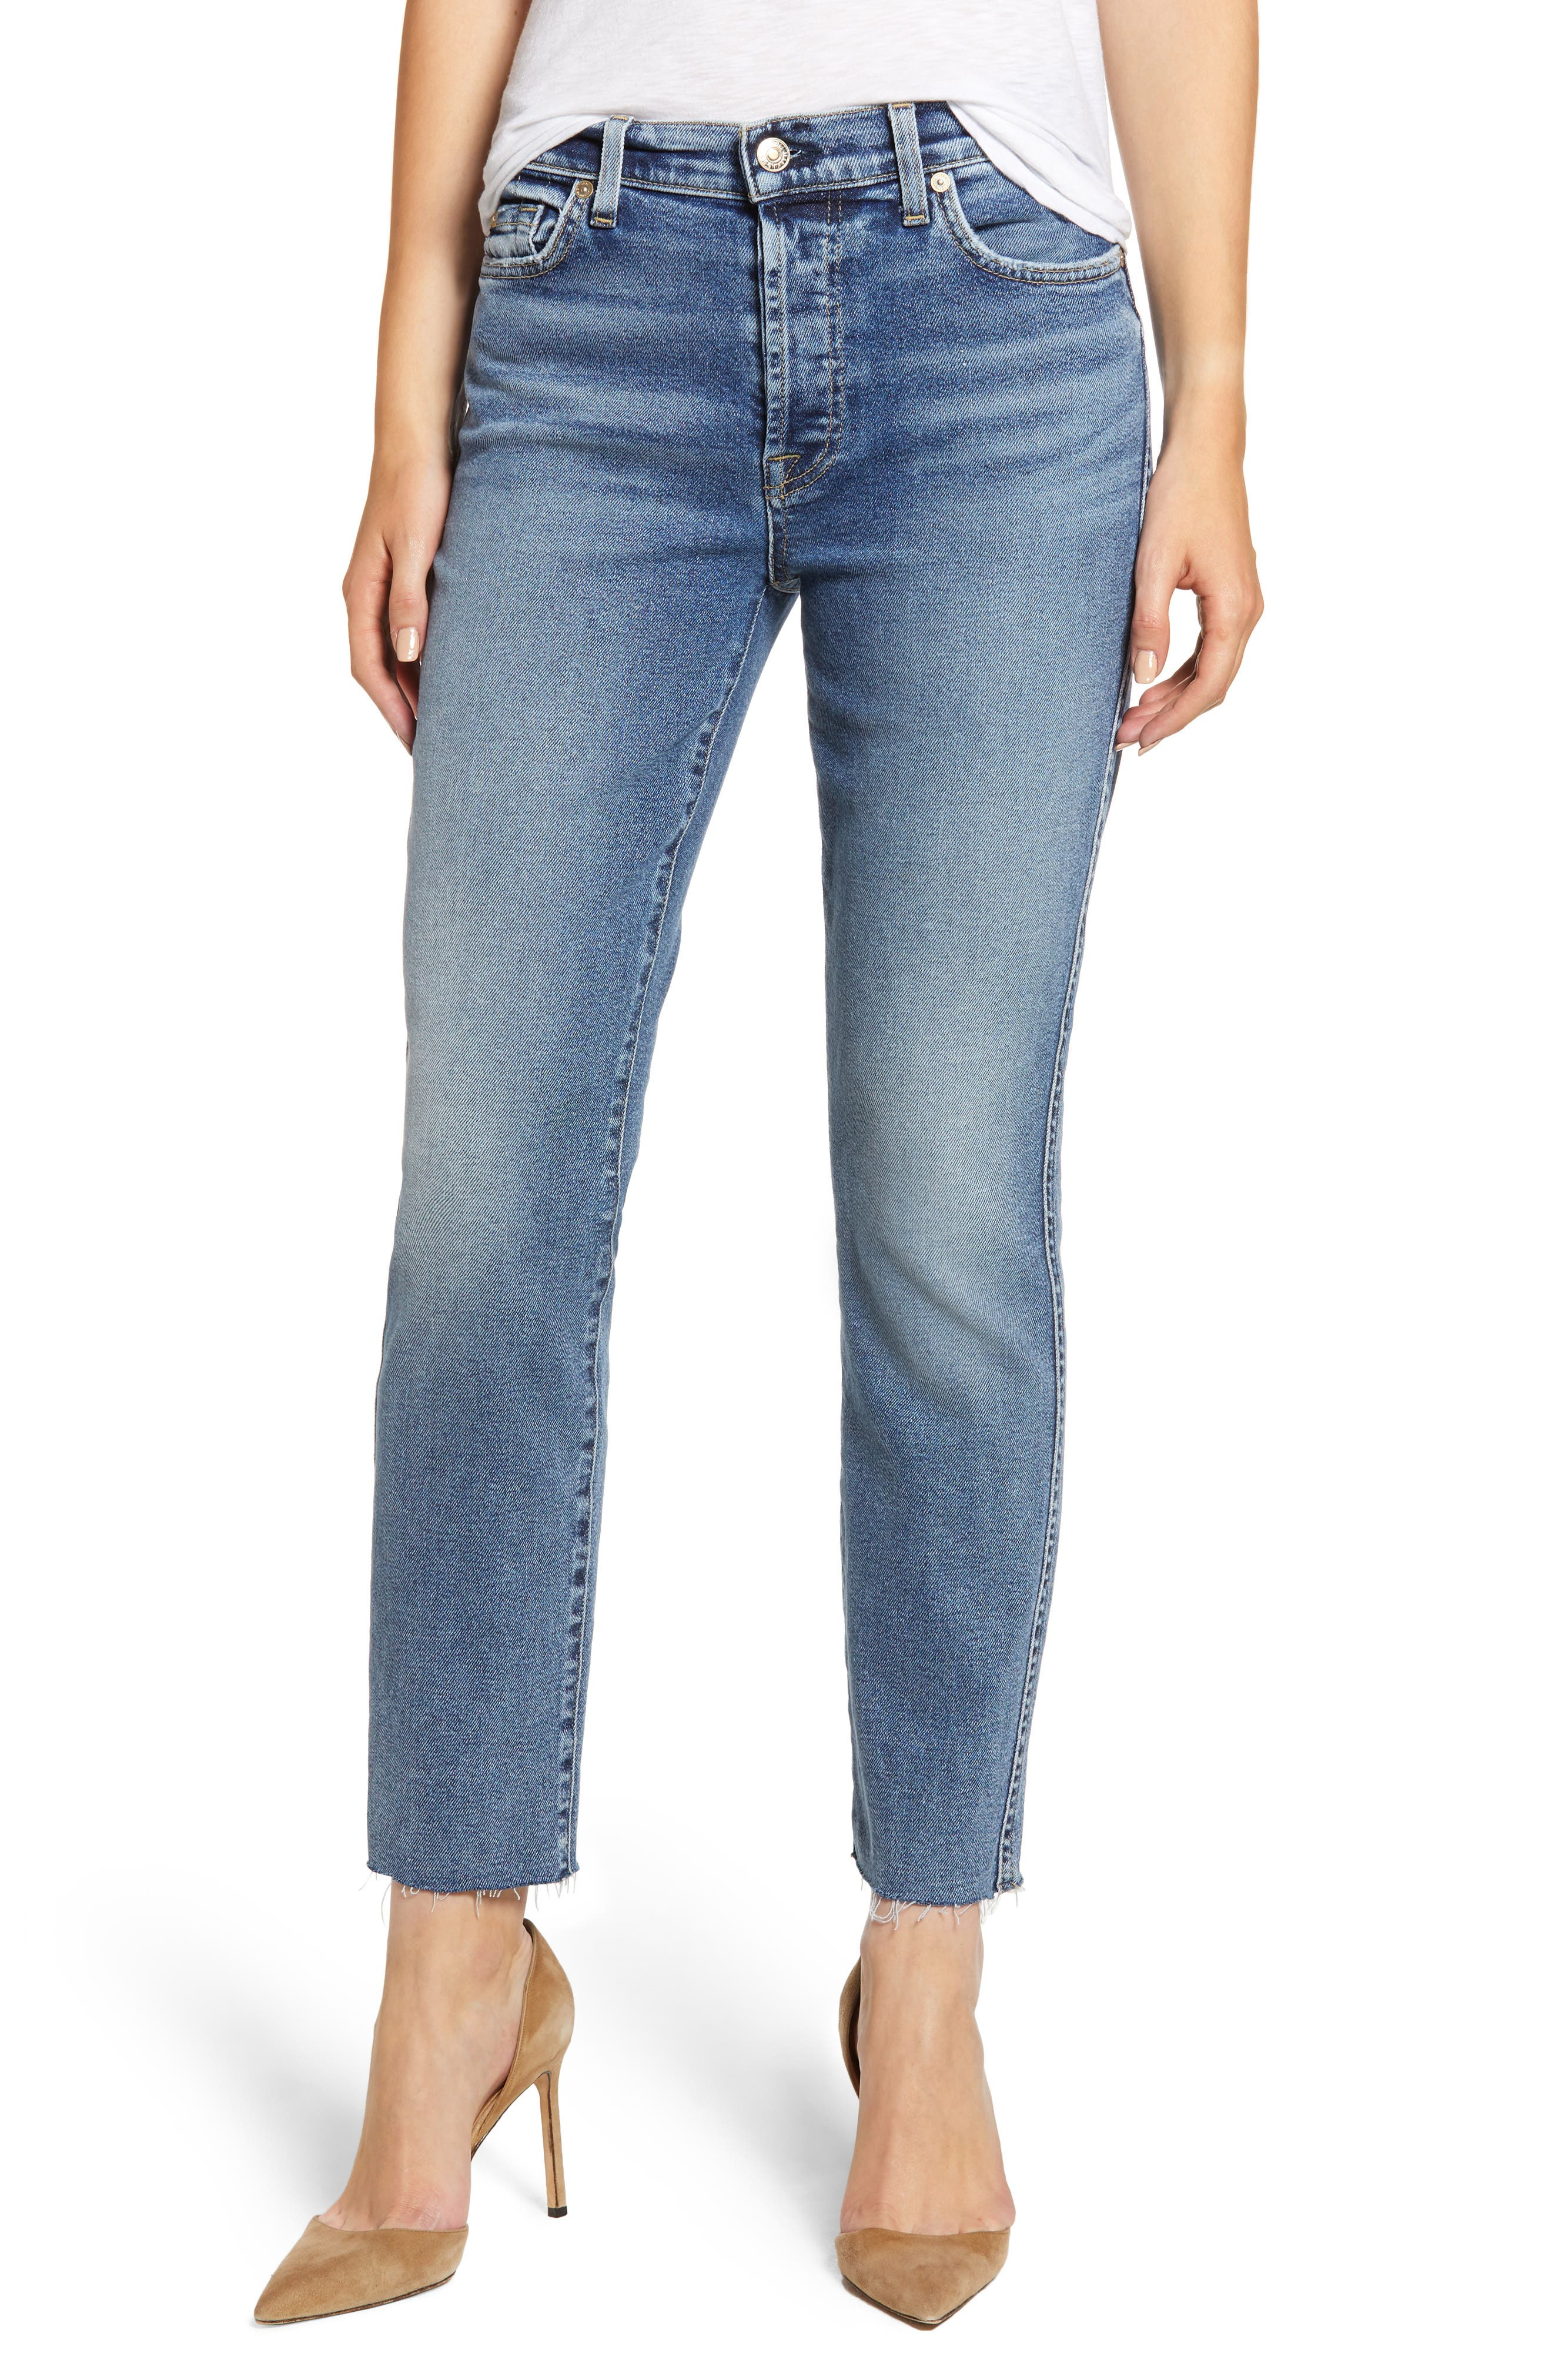 7 FOR ALL MANKIND<SUP>®</SUP>, Luxe Vintage Edie Cutoff Hem Straight Leg Jeans, Main thumbnail 1, color, LUXE VINTAGE MUSE